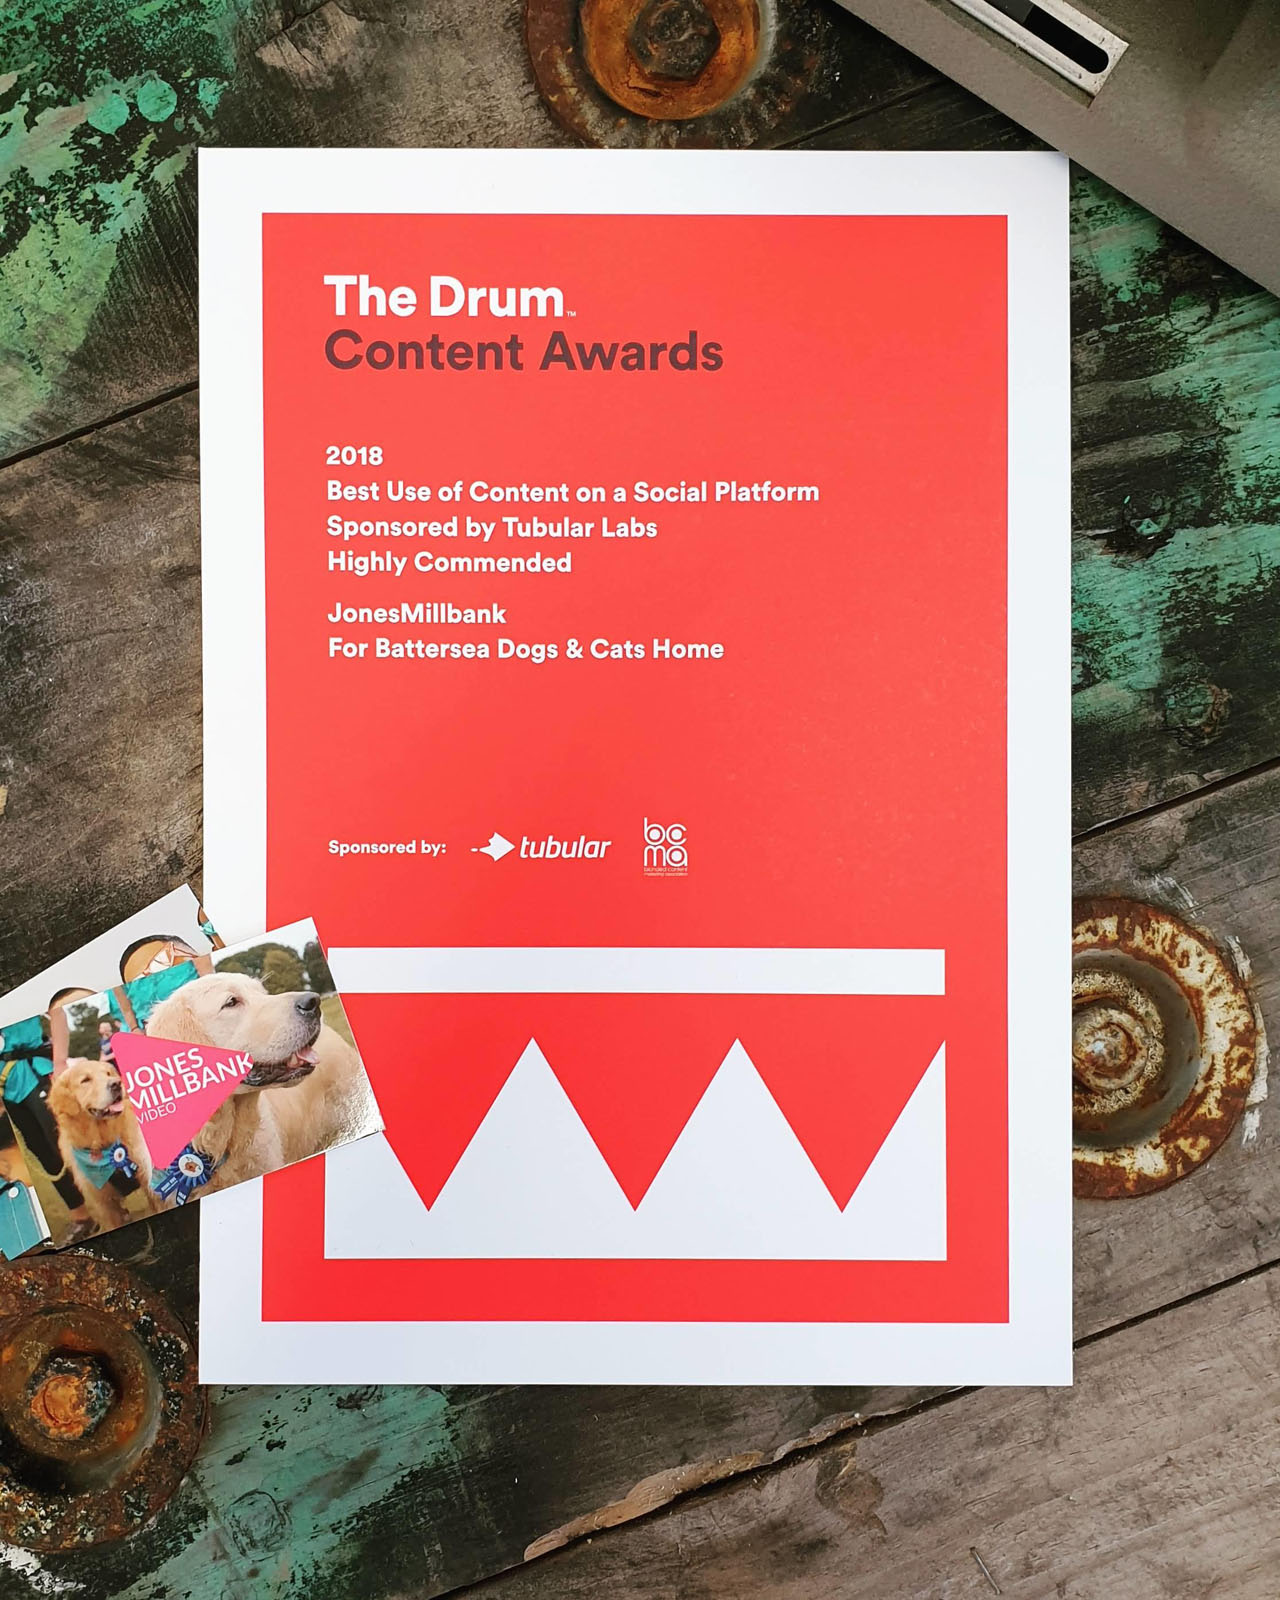 The Drum Content Awards 2018 - Best Use of Content on a Social Platform - Highly Commended